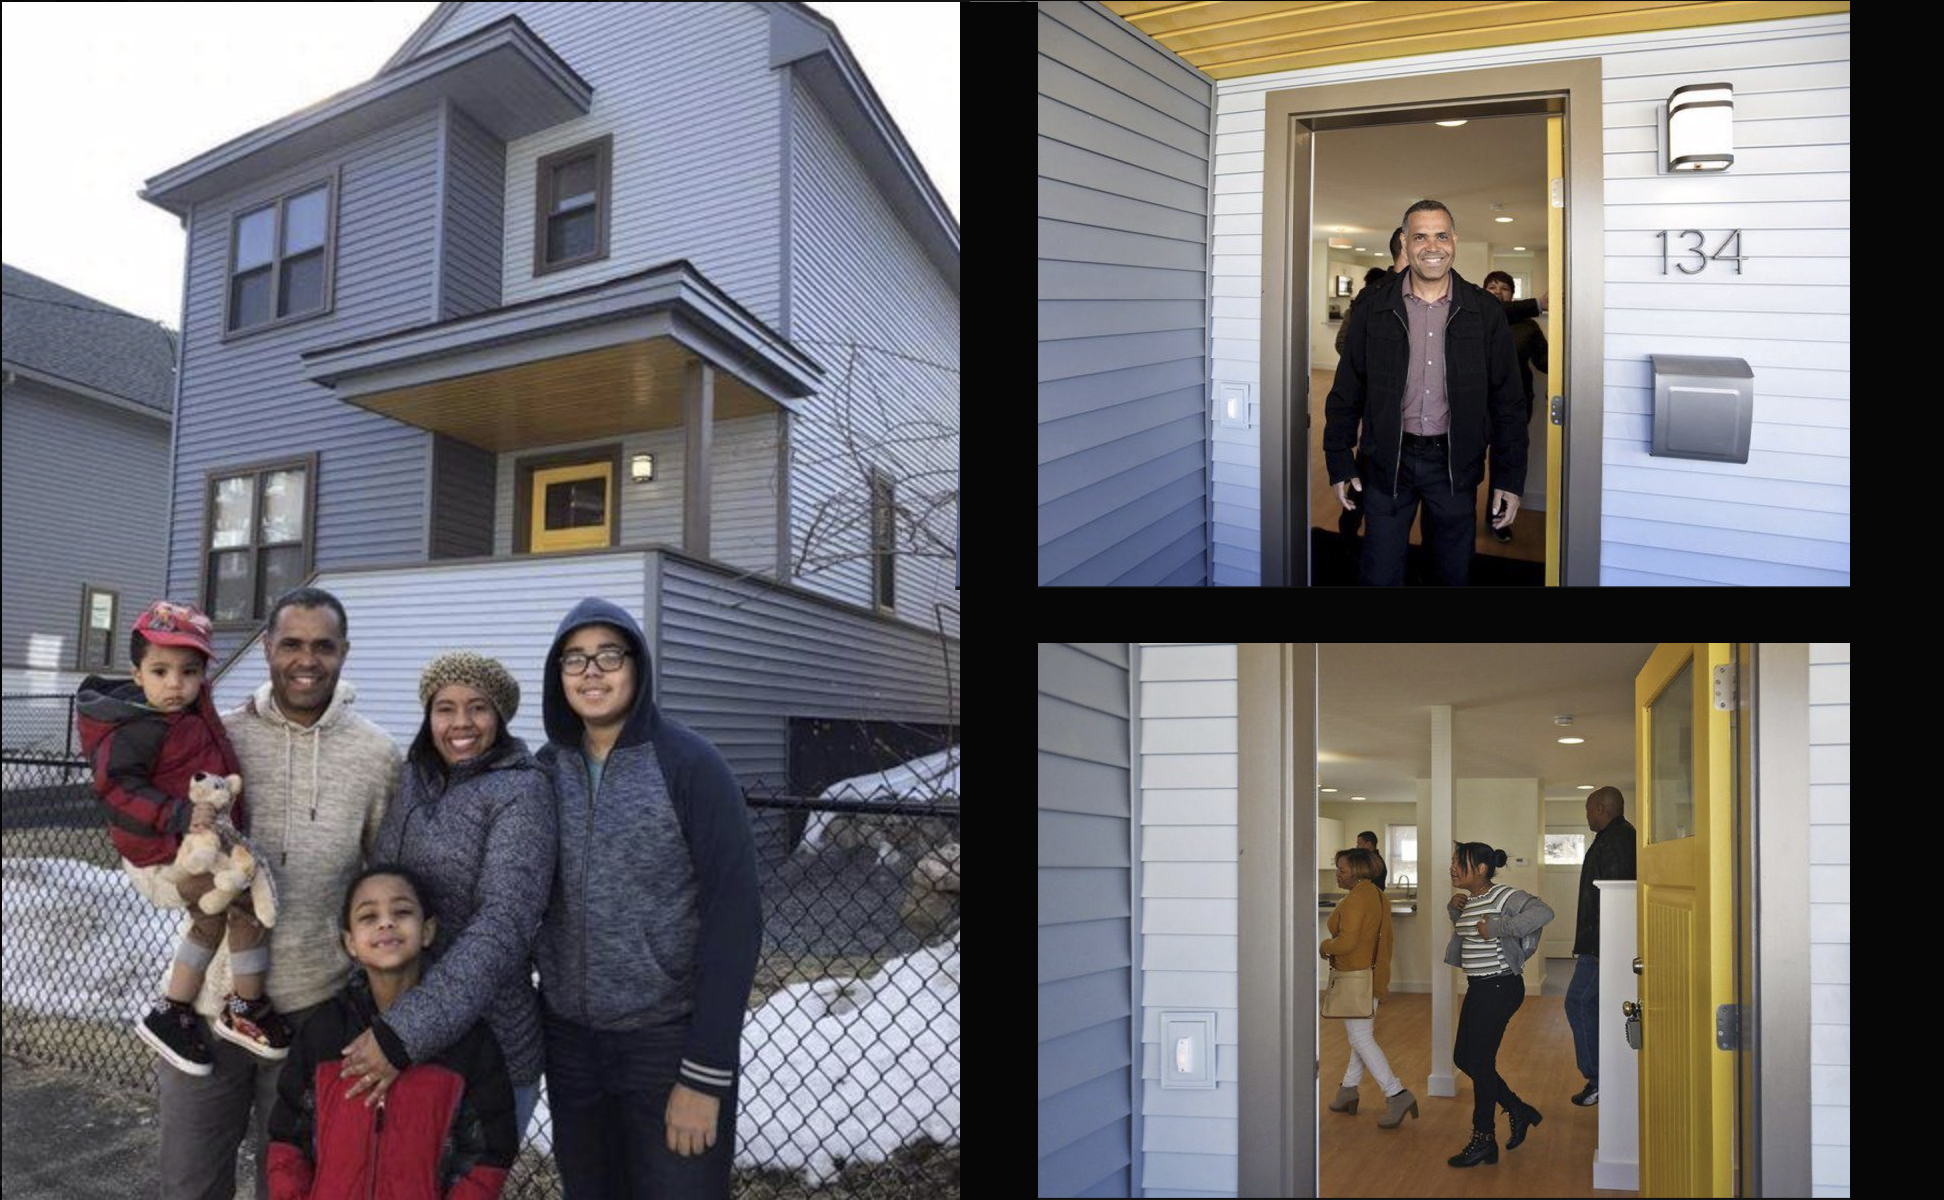 Lawrence Community Works affordable housing finished construction